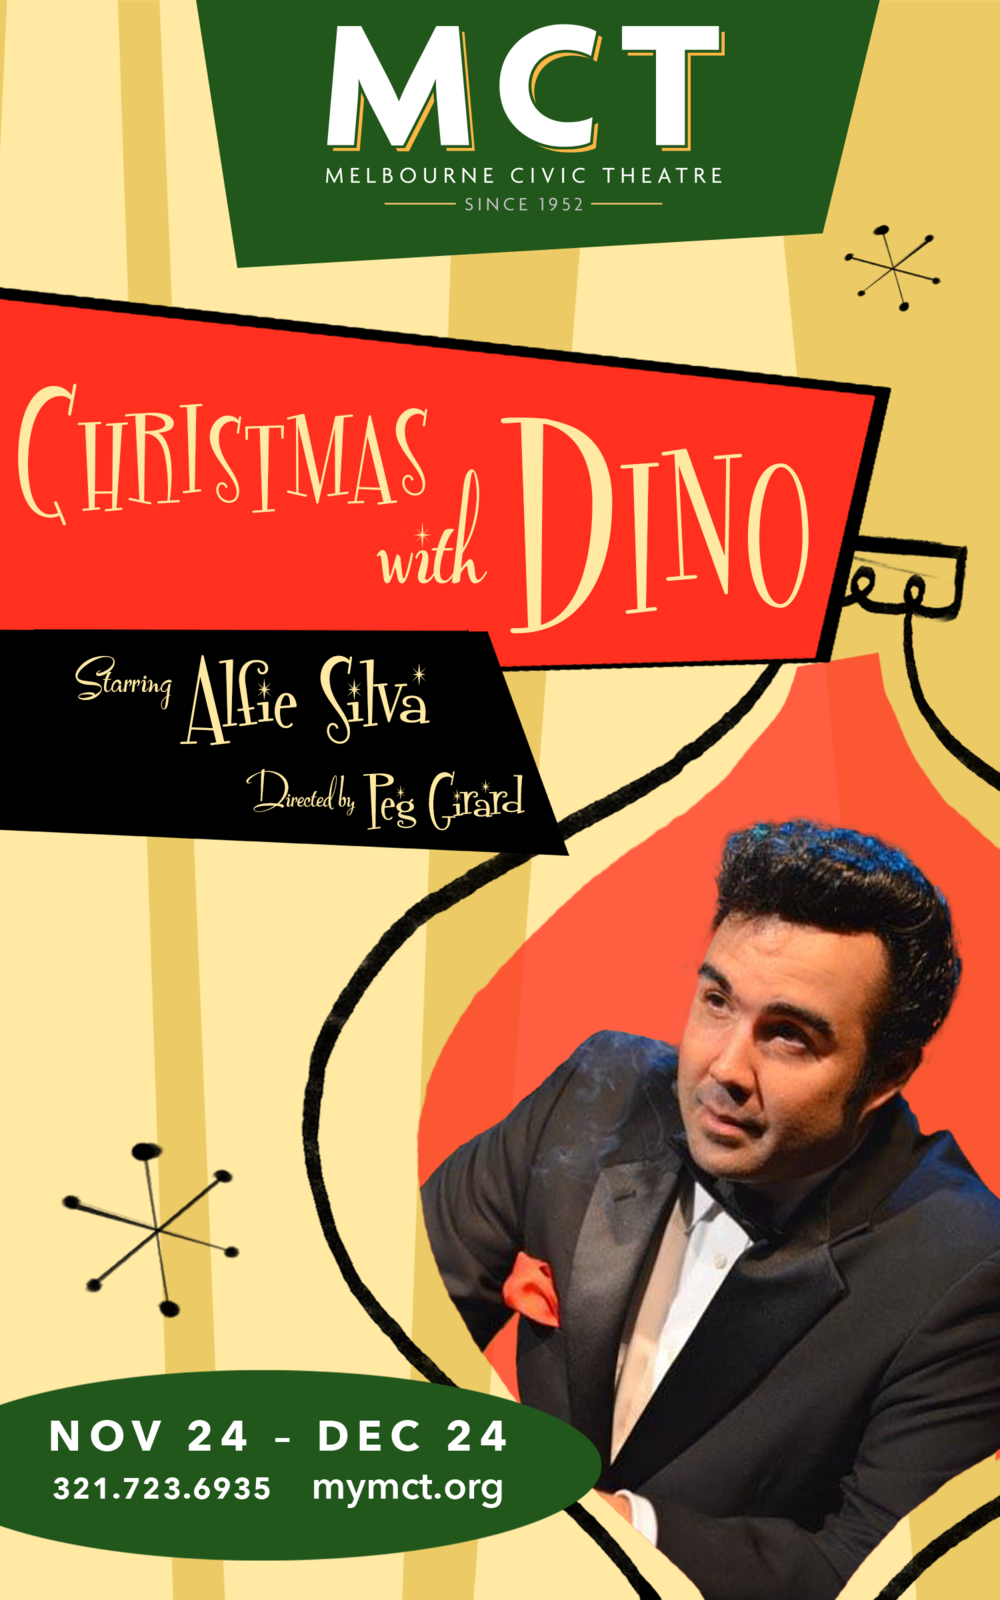 Alfie Silva's Christmas with Dino